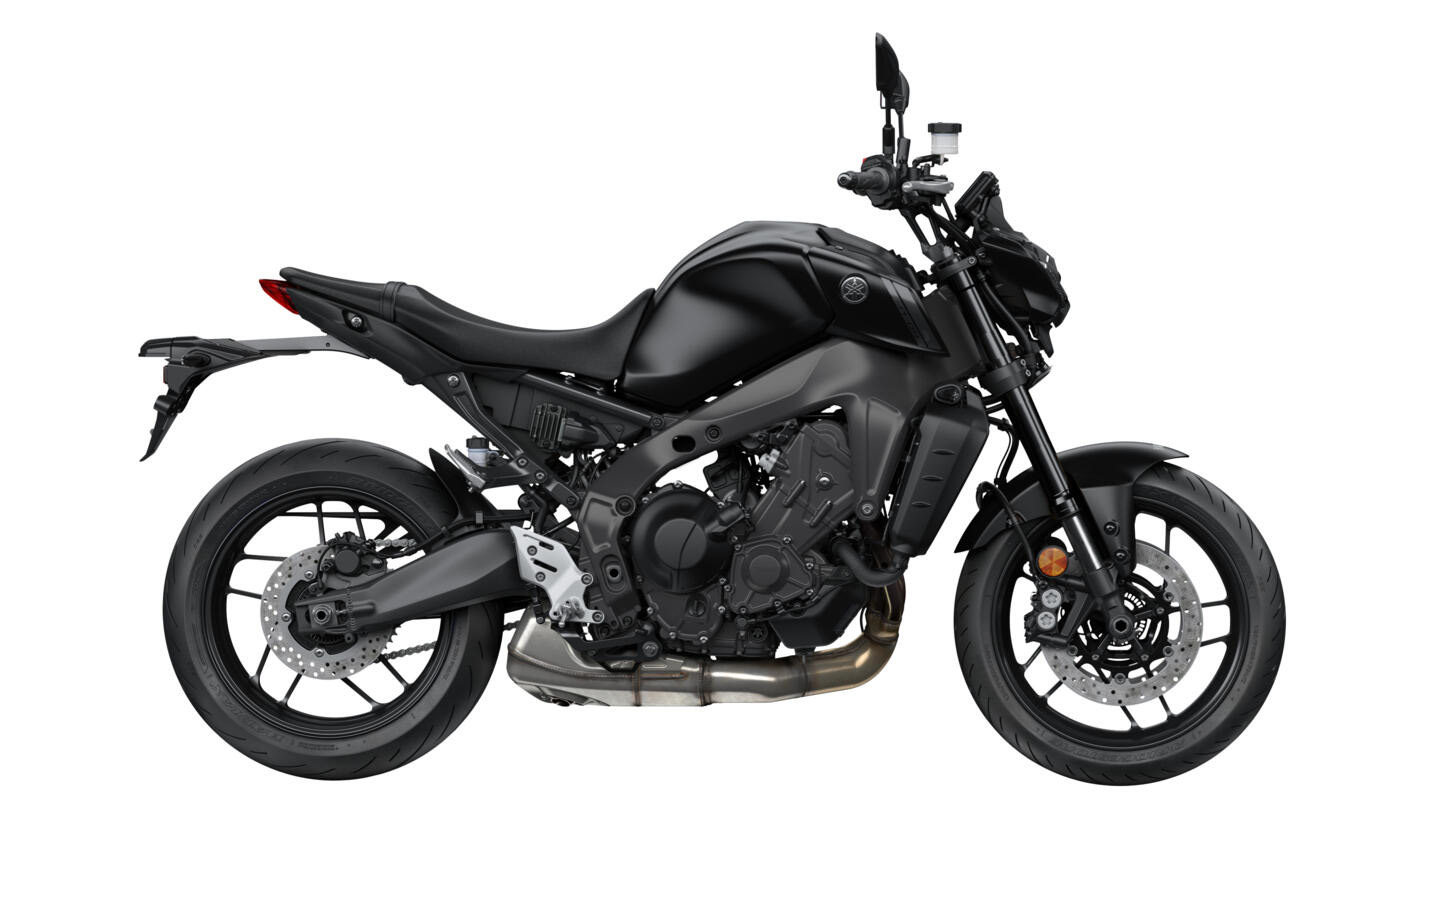 Yamaha MT-09 2021 in Tech Black